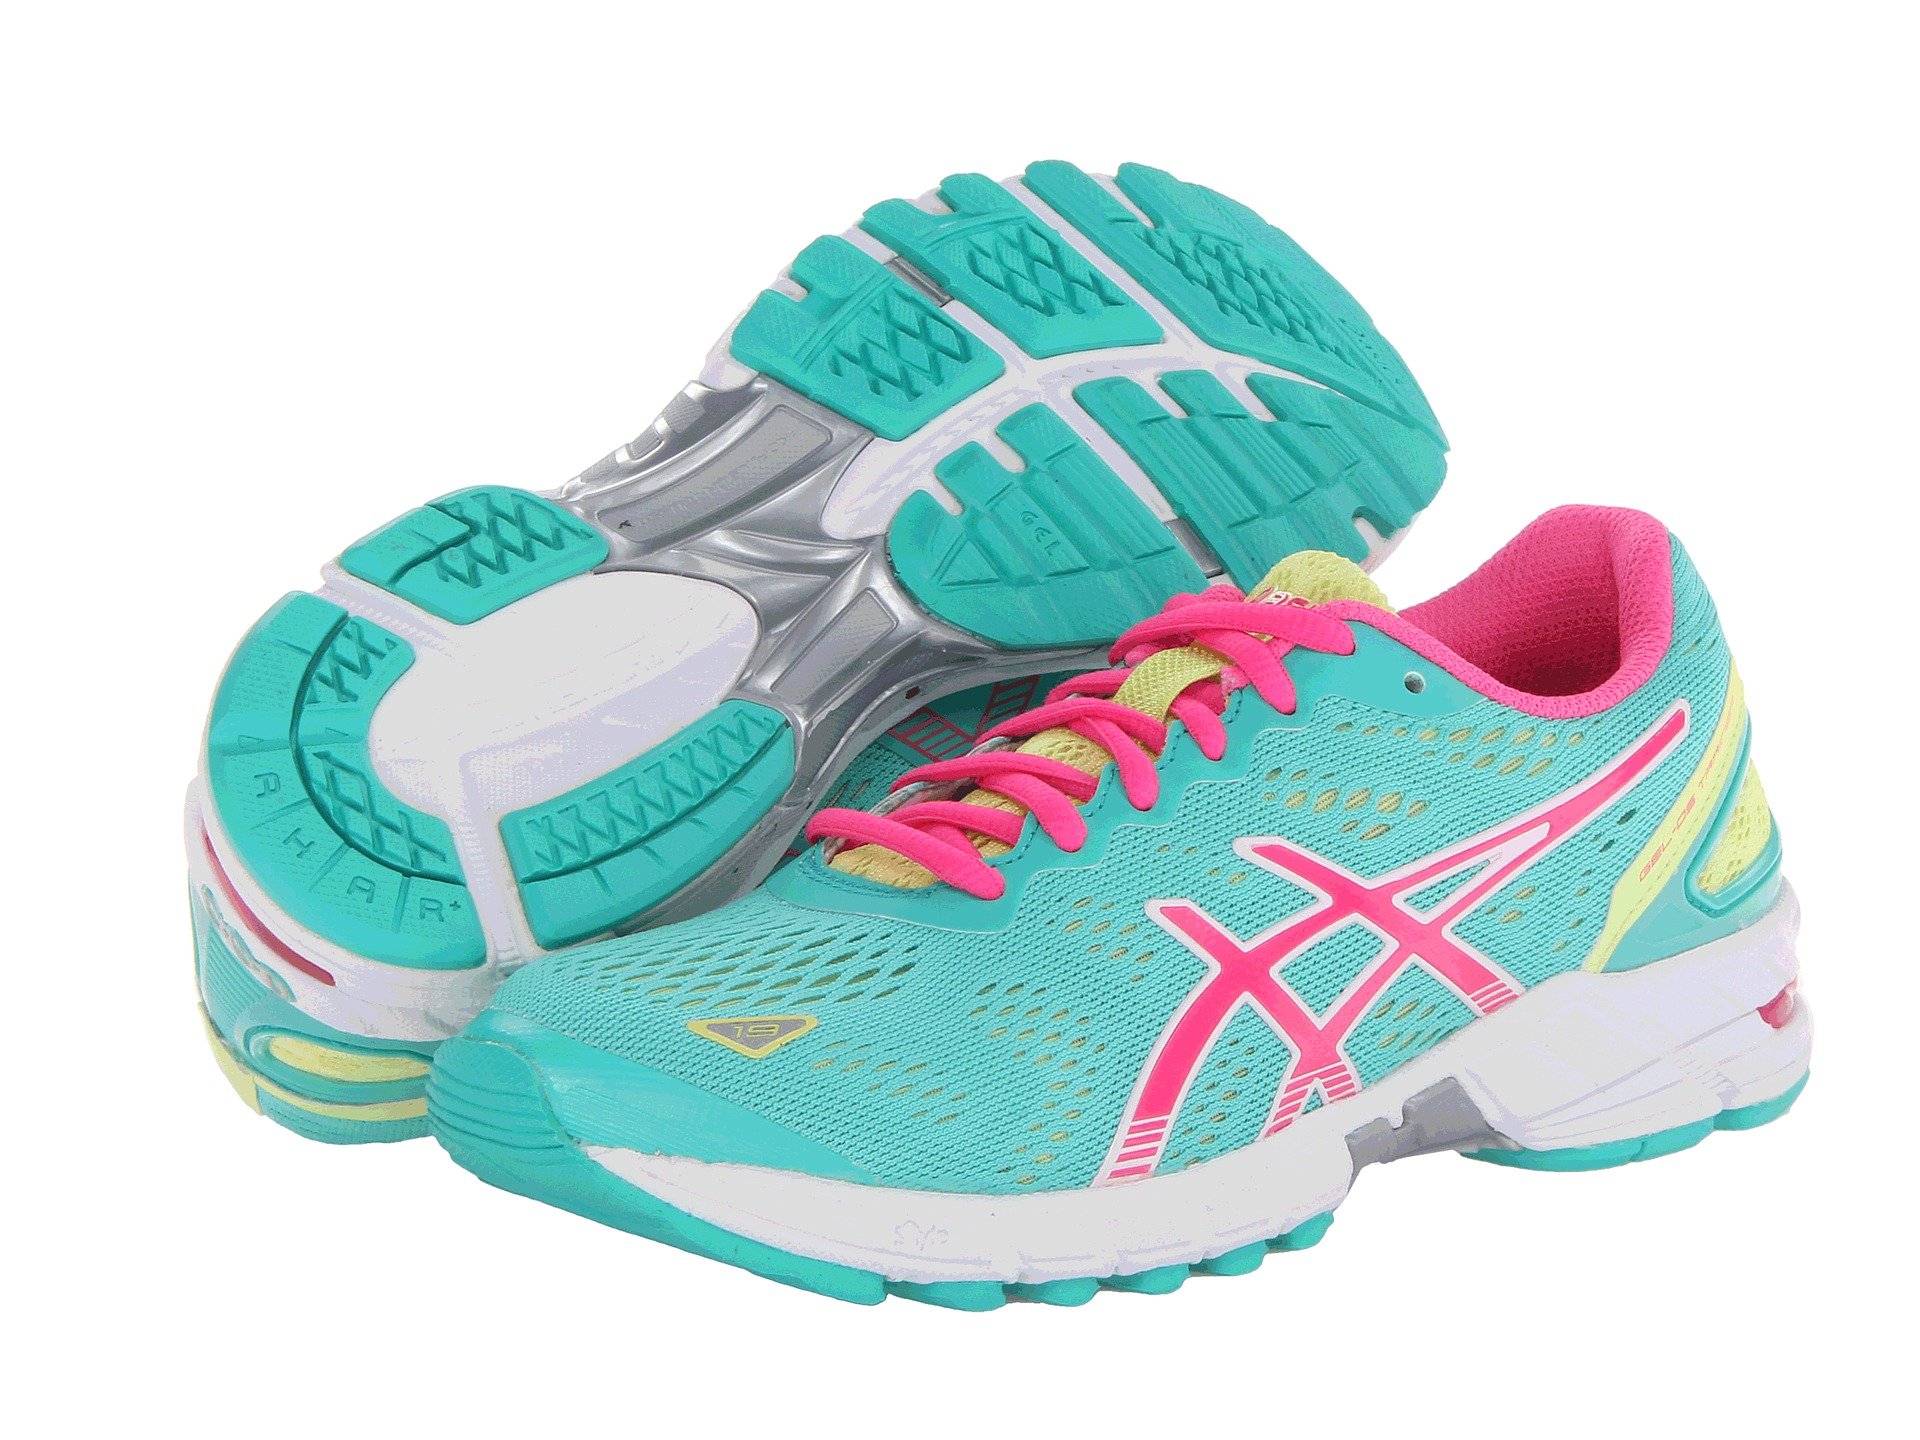 asics gel ds trainer 19 shoes shipped free at zappos. Black Bedroom Furniture Sets. Home Design Ideas